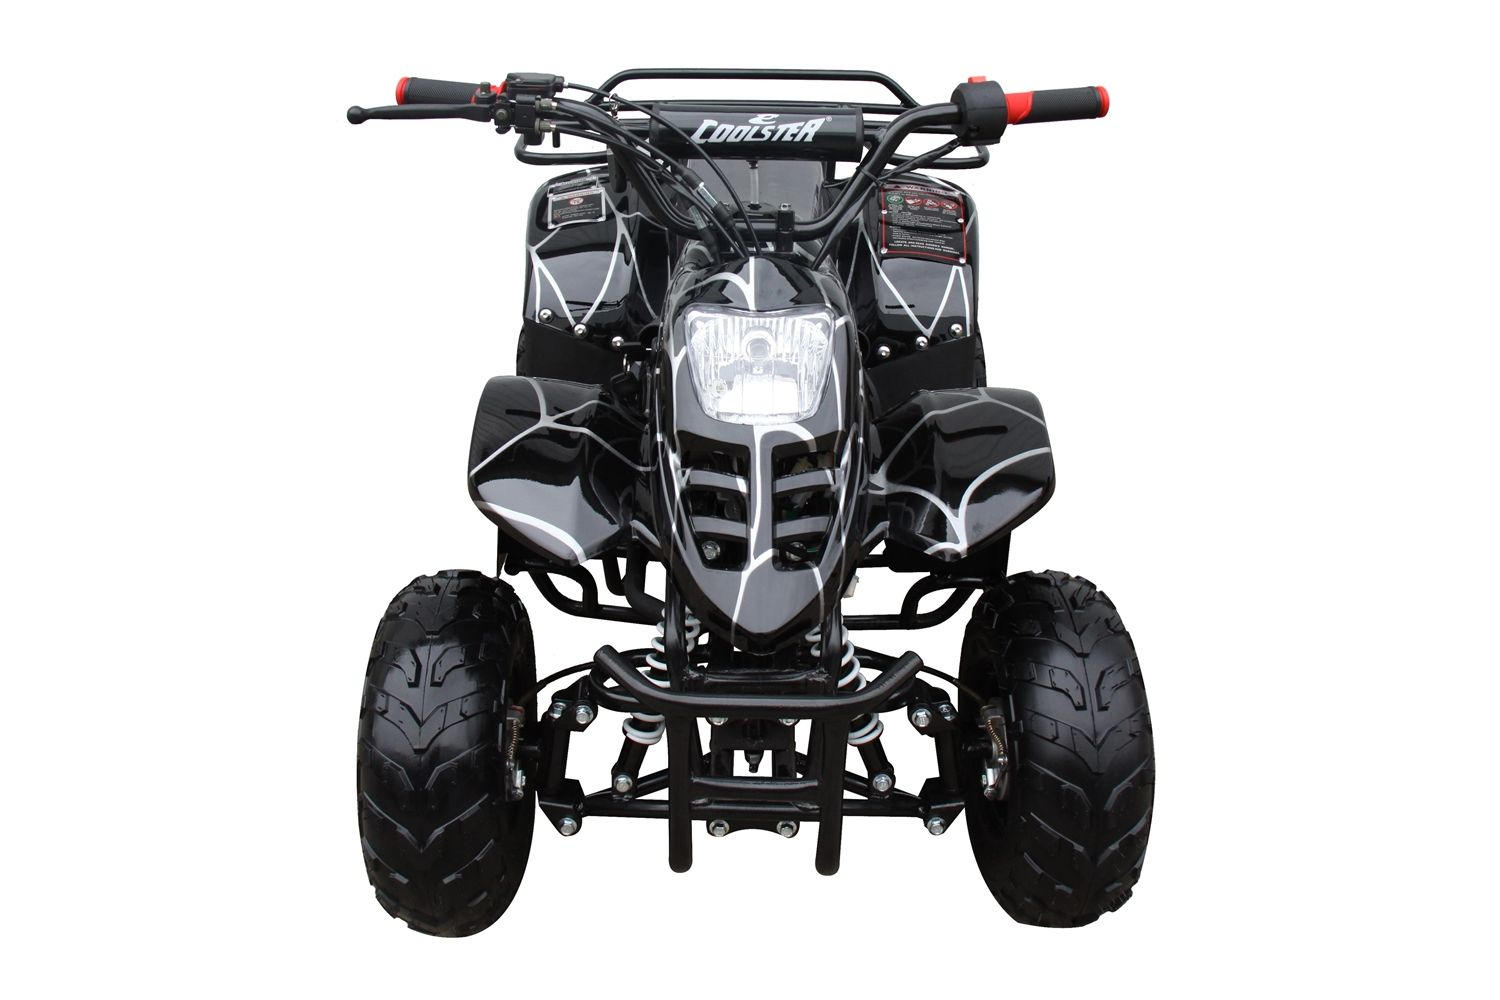 Coolster 3050C 110cc ATV Mini Size, Rear Rack Included